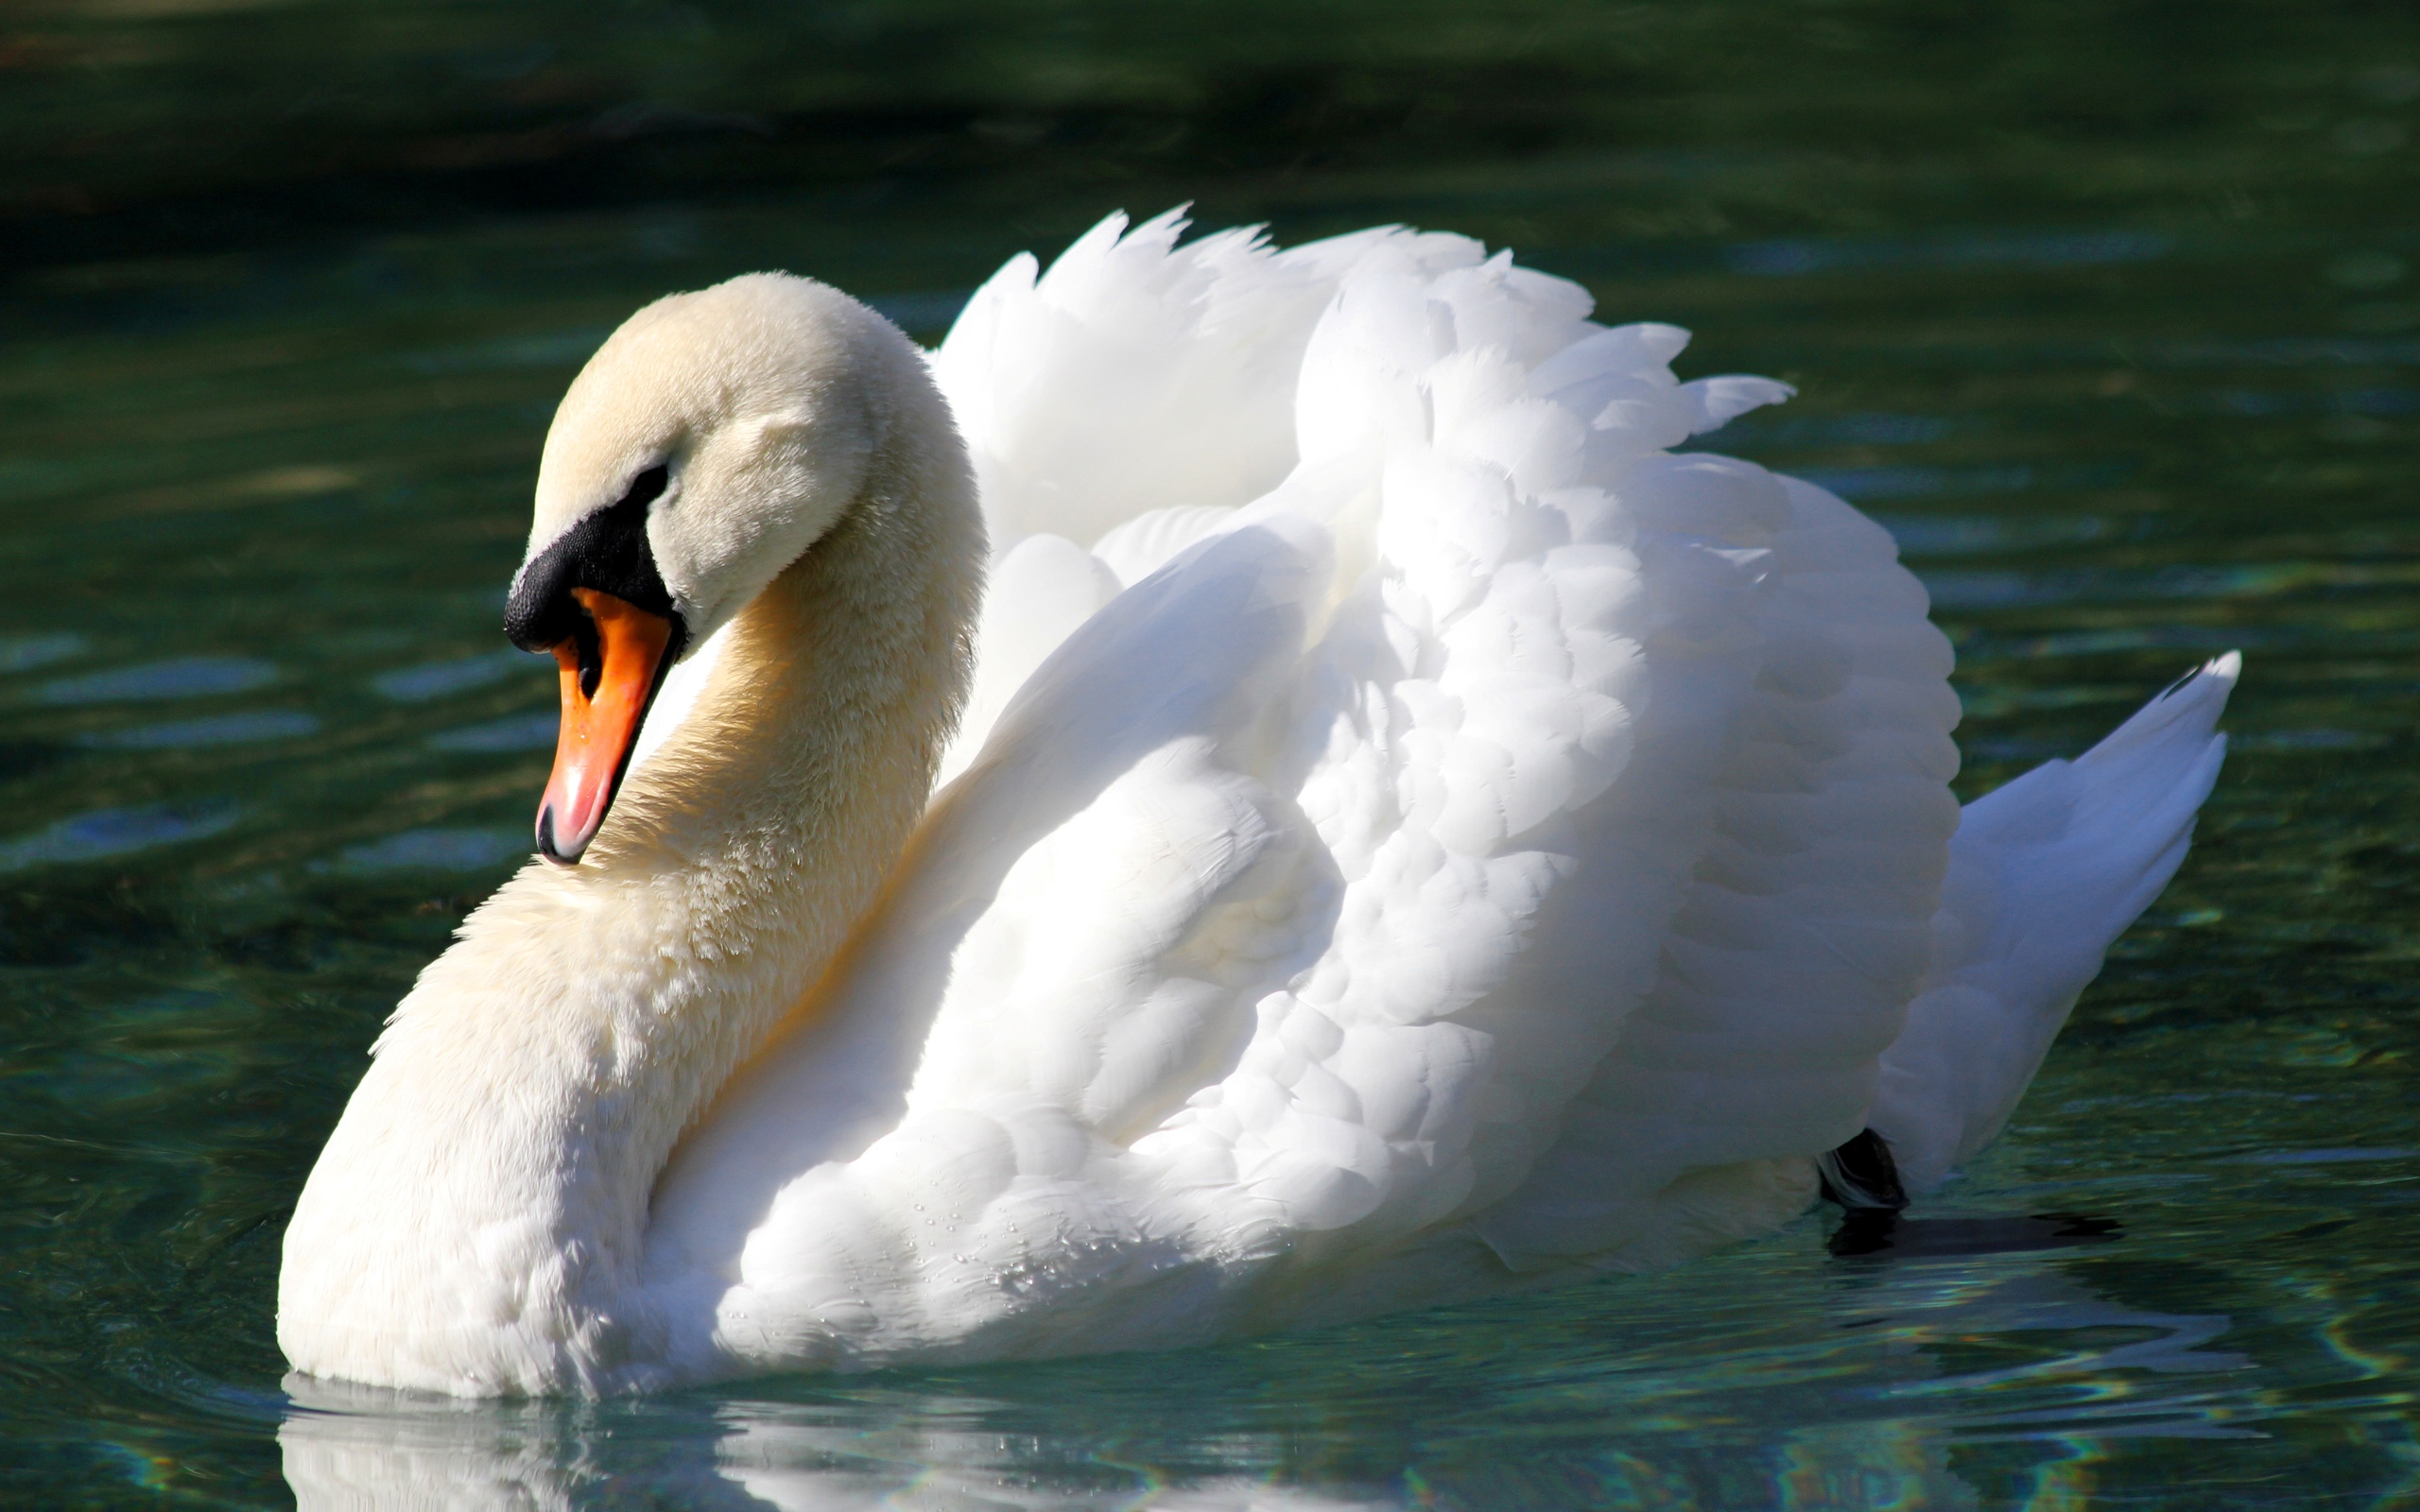 More Wallpaper For Iphone X Mute Swan Full Hd Wallpaper And Background Image